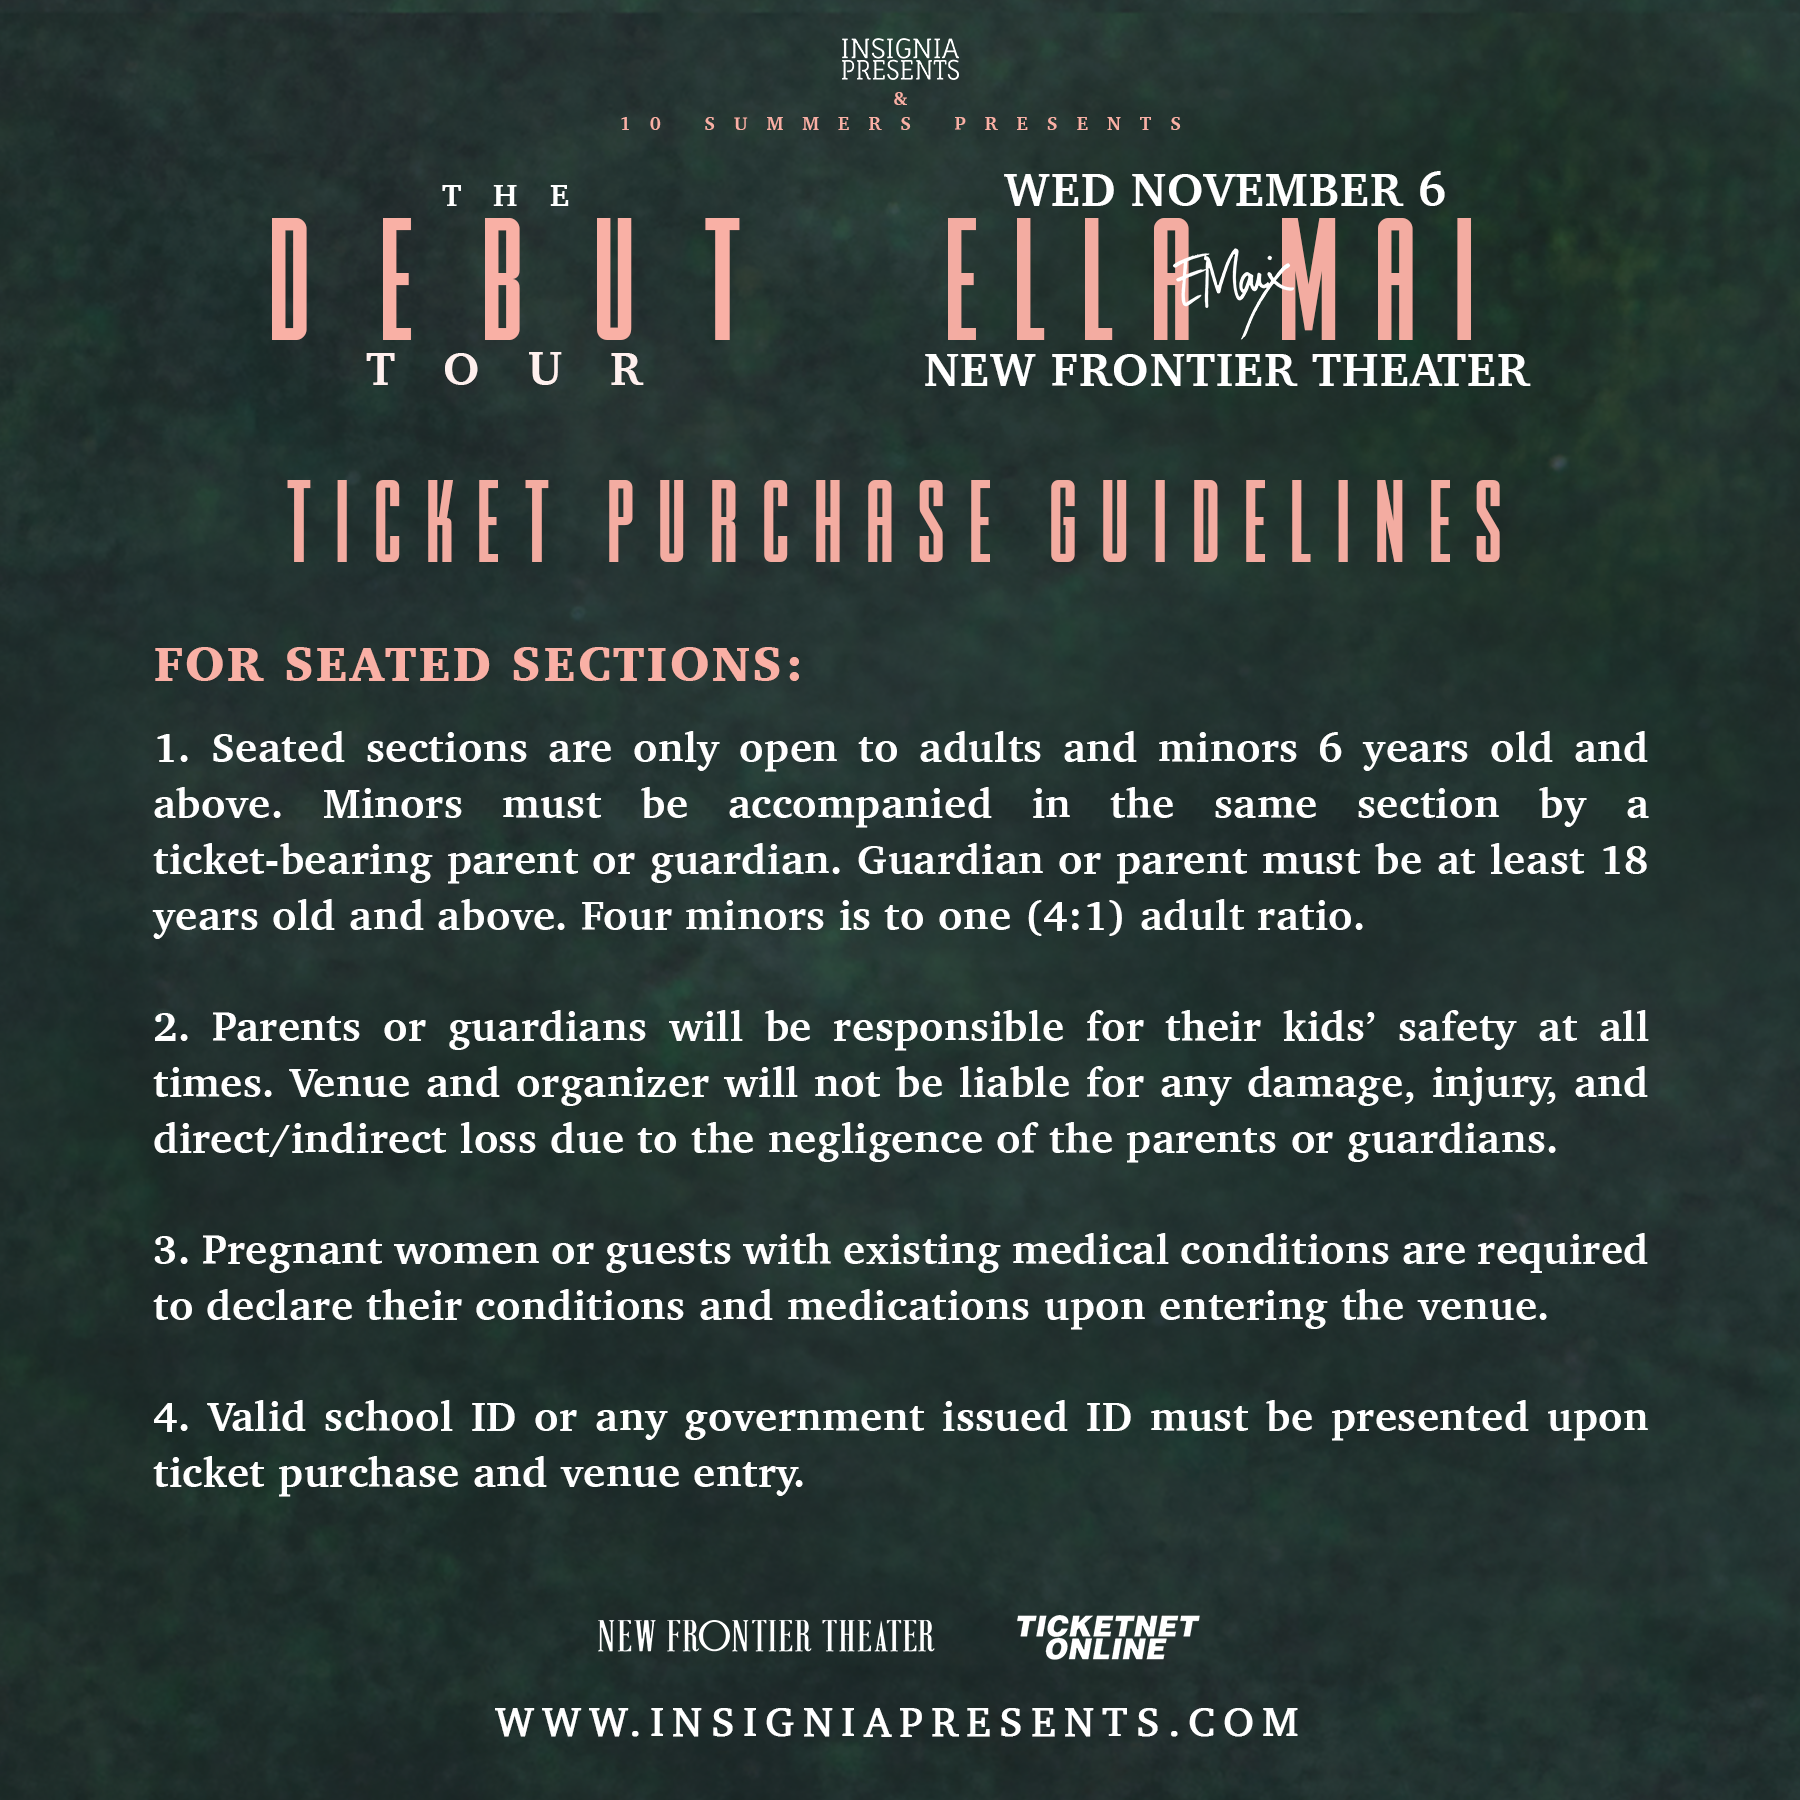 EventGuidelines_SeatedSections_EllaMai-11.06.19-NewFrontierTheater-ManilaPhilippines-v2.png